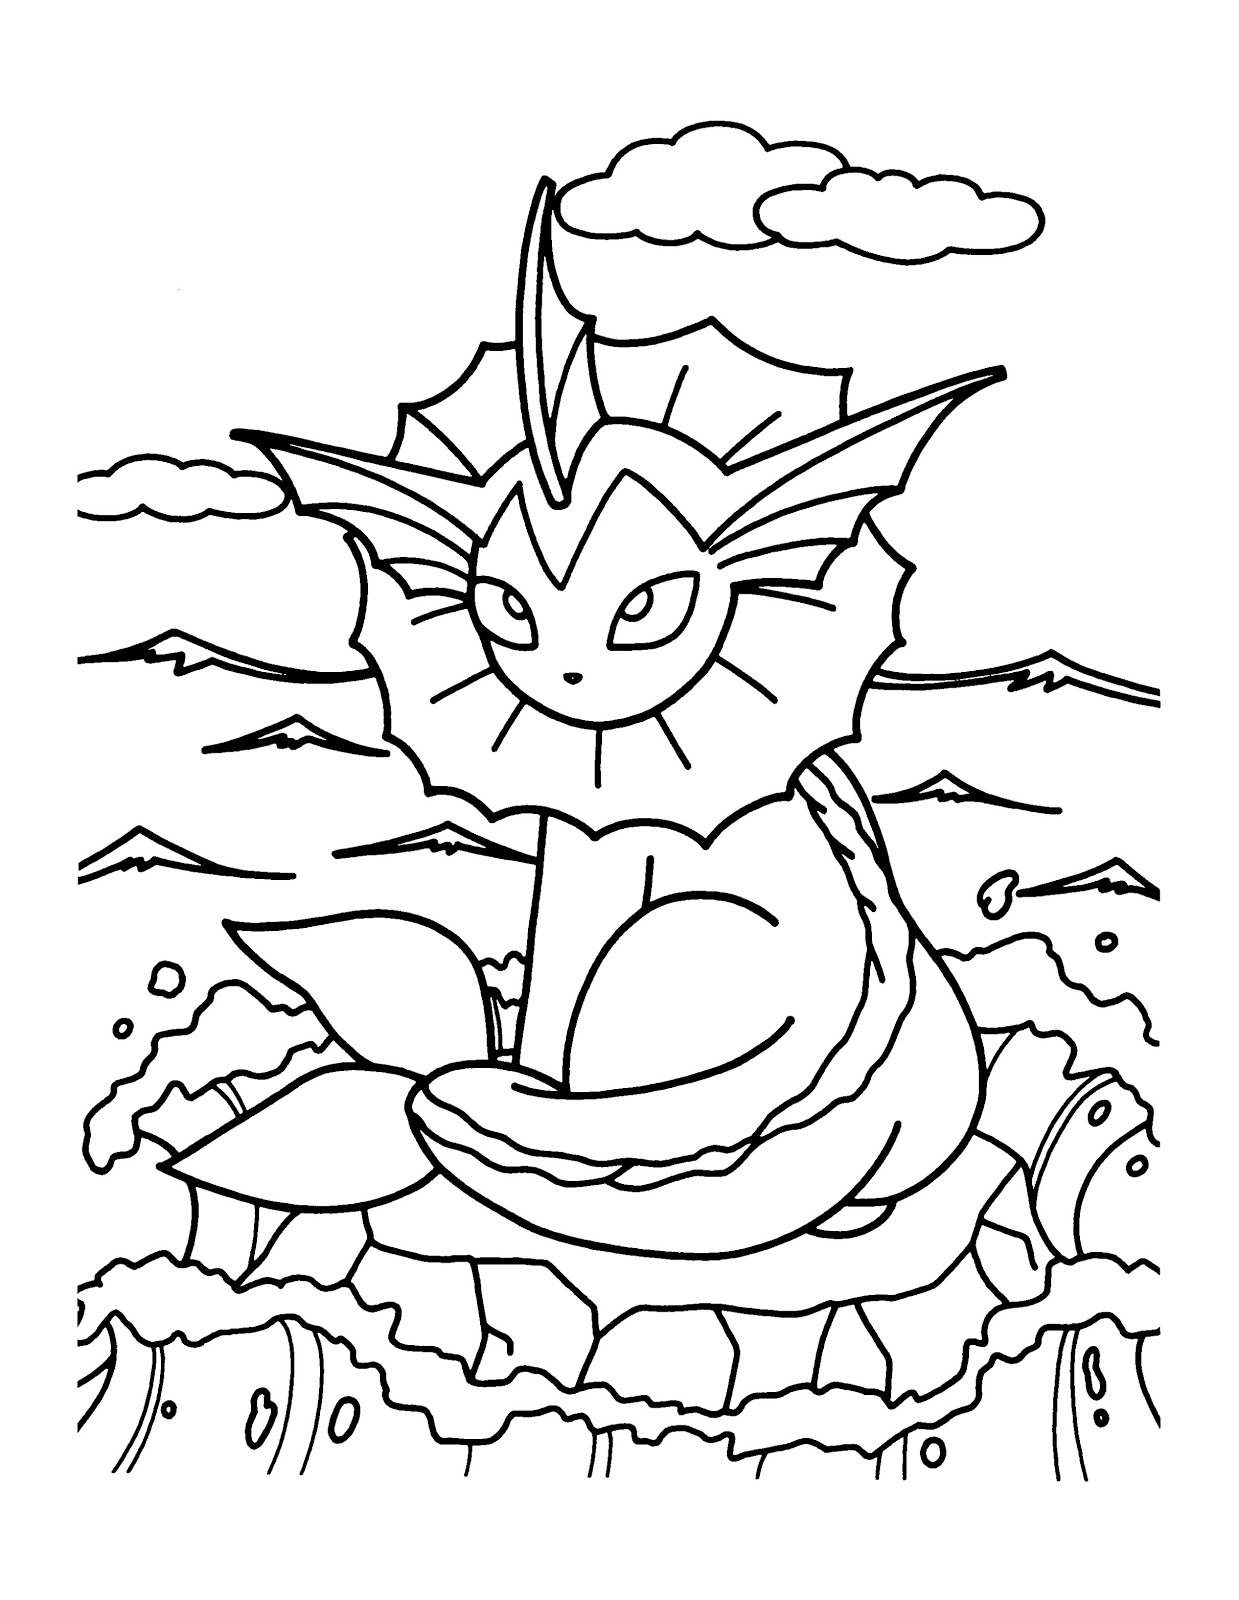 Pokemon Vaporeon Coloring Pages - Free Pokemon Coloring Pages